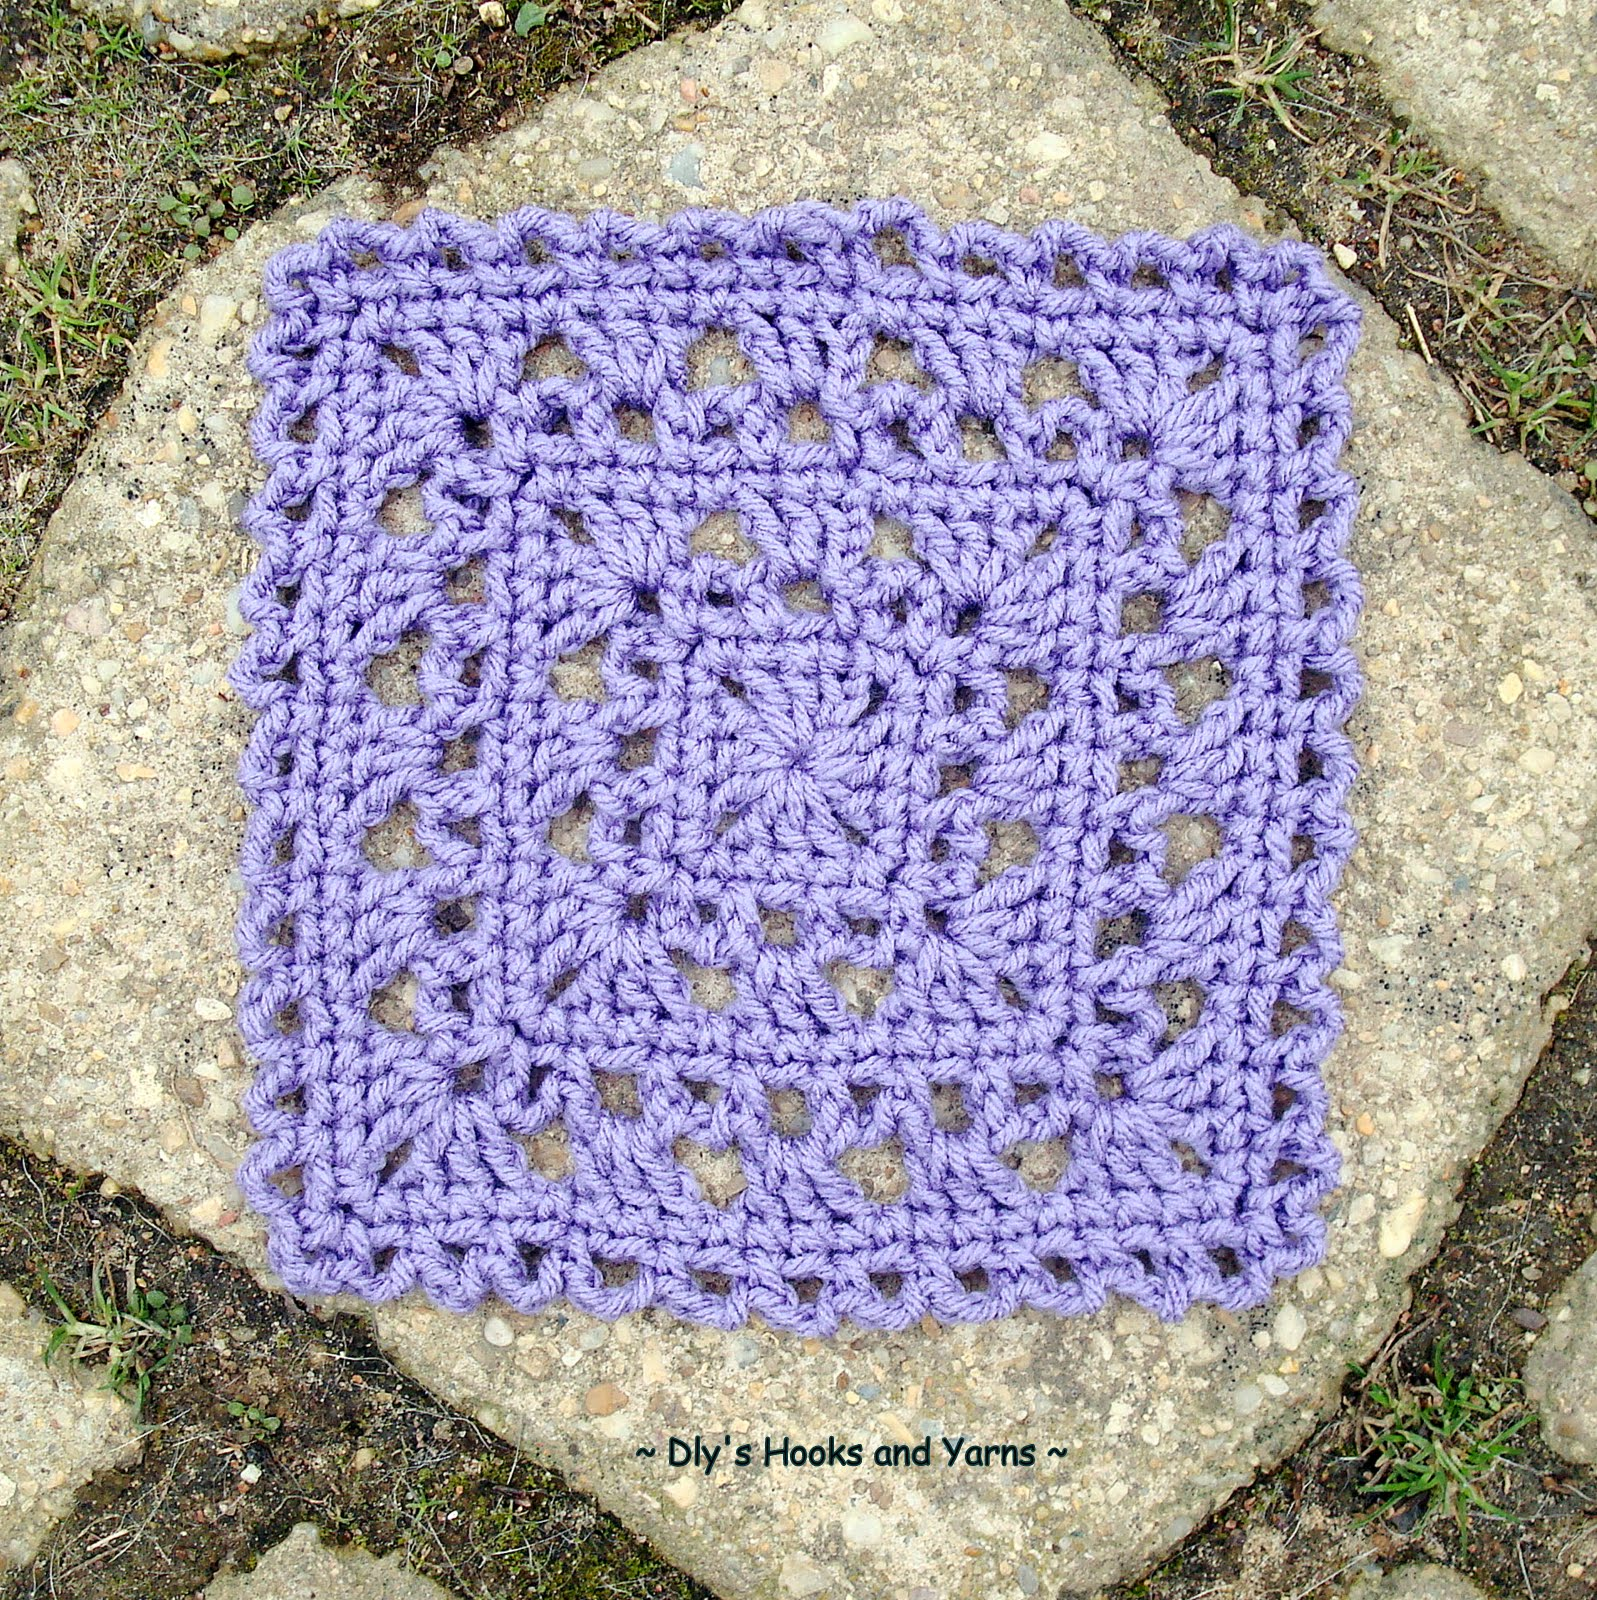 Free Crochet Patterns 6 Inch Squares : Dlys Hooks and Yarns ~: ~ simply pretty